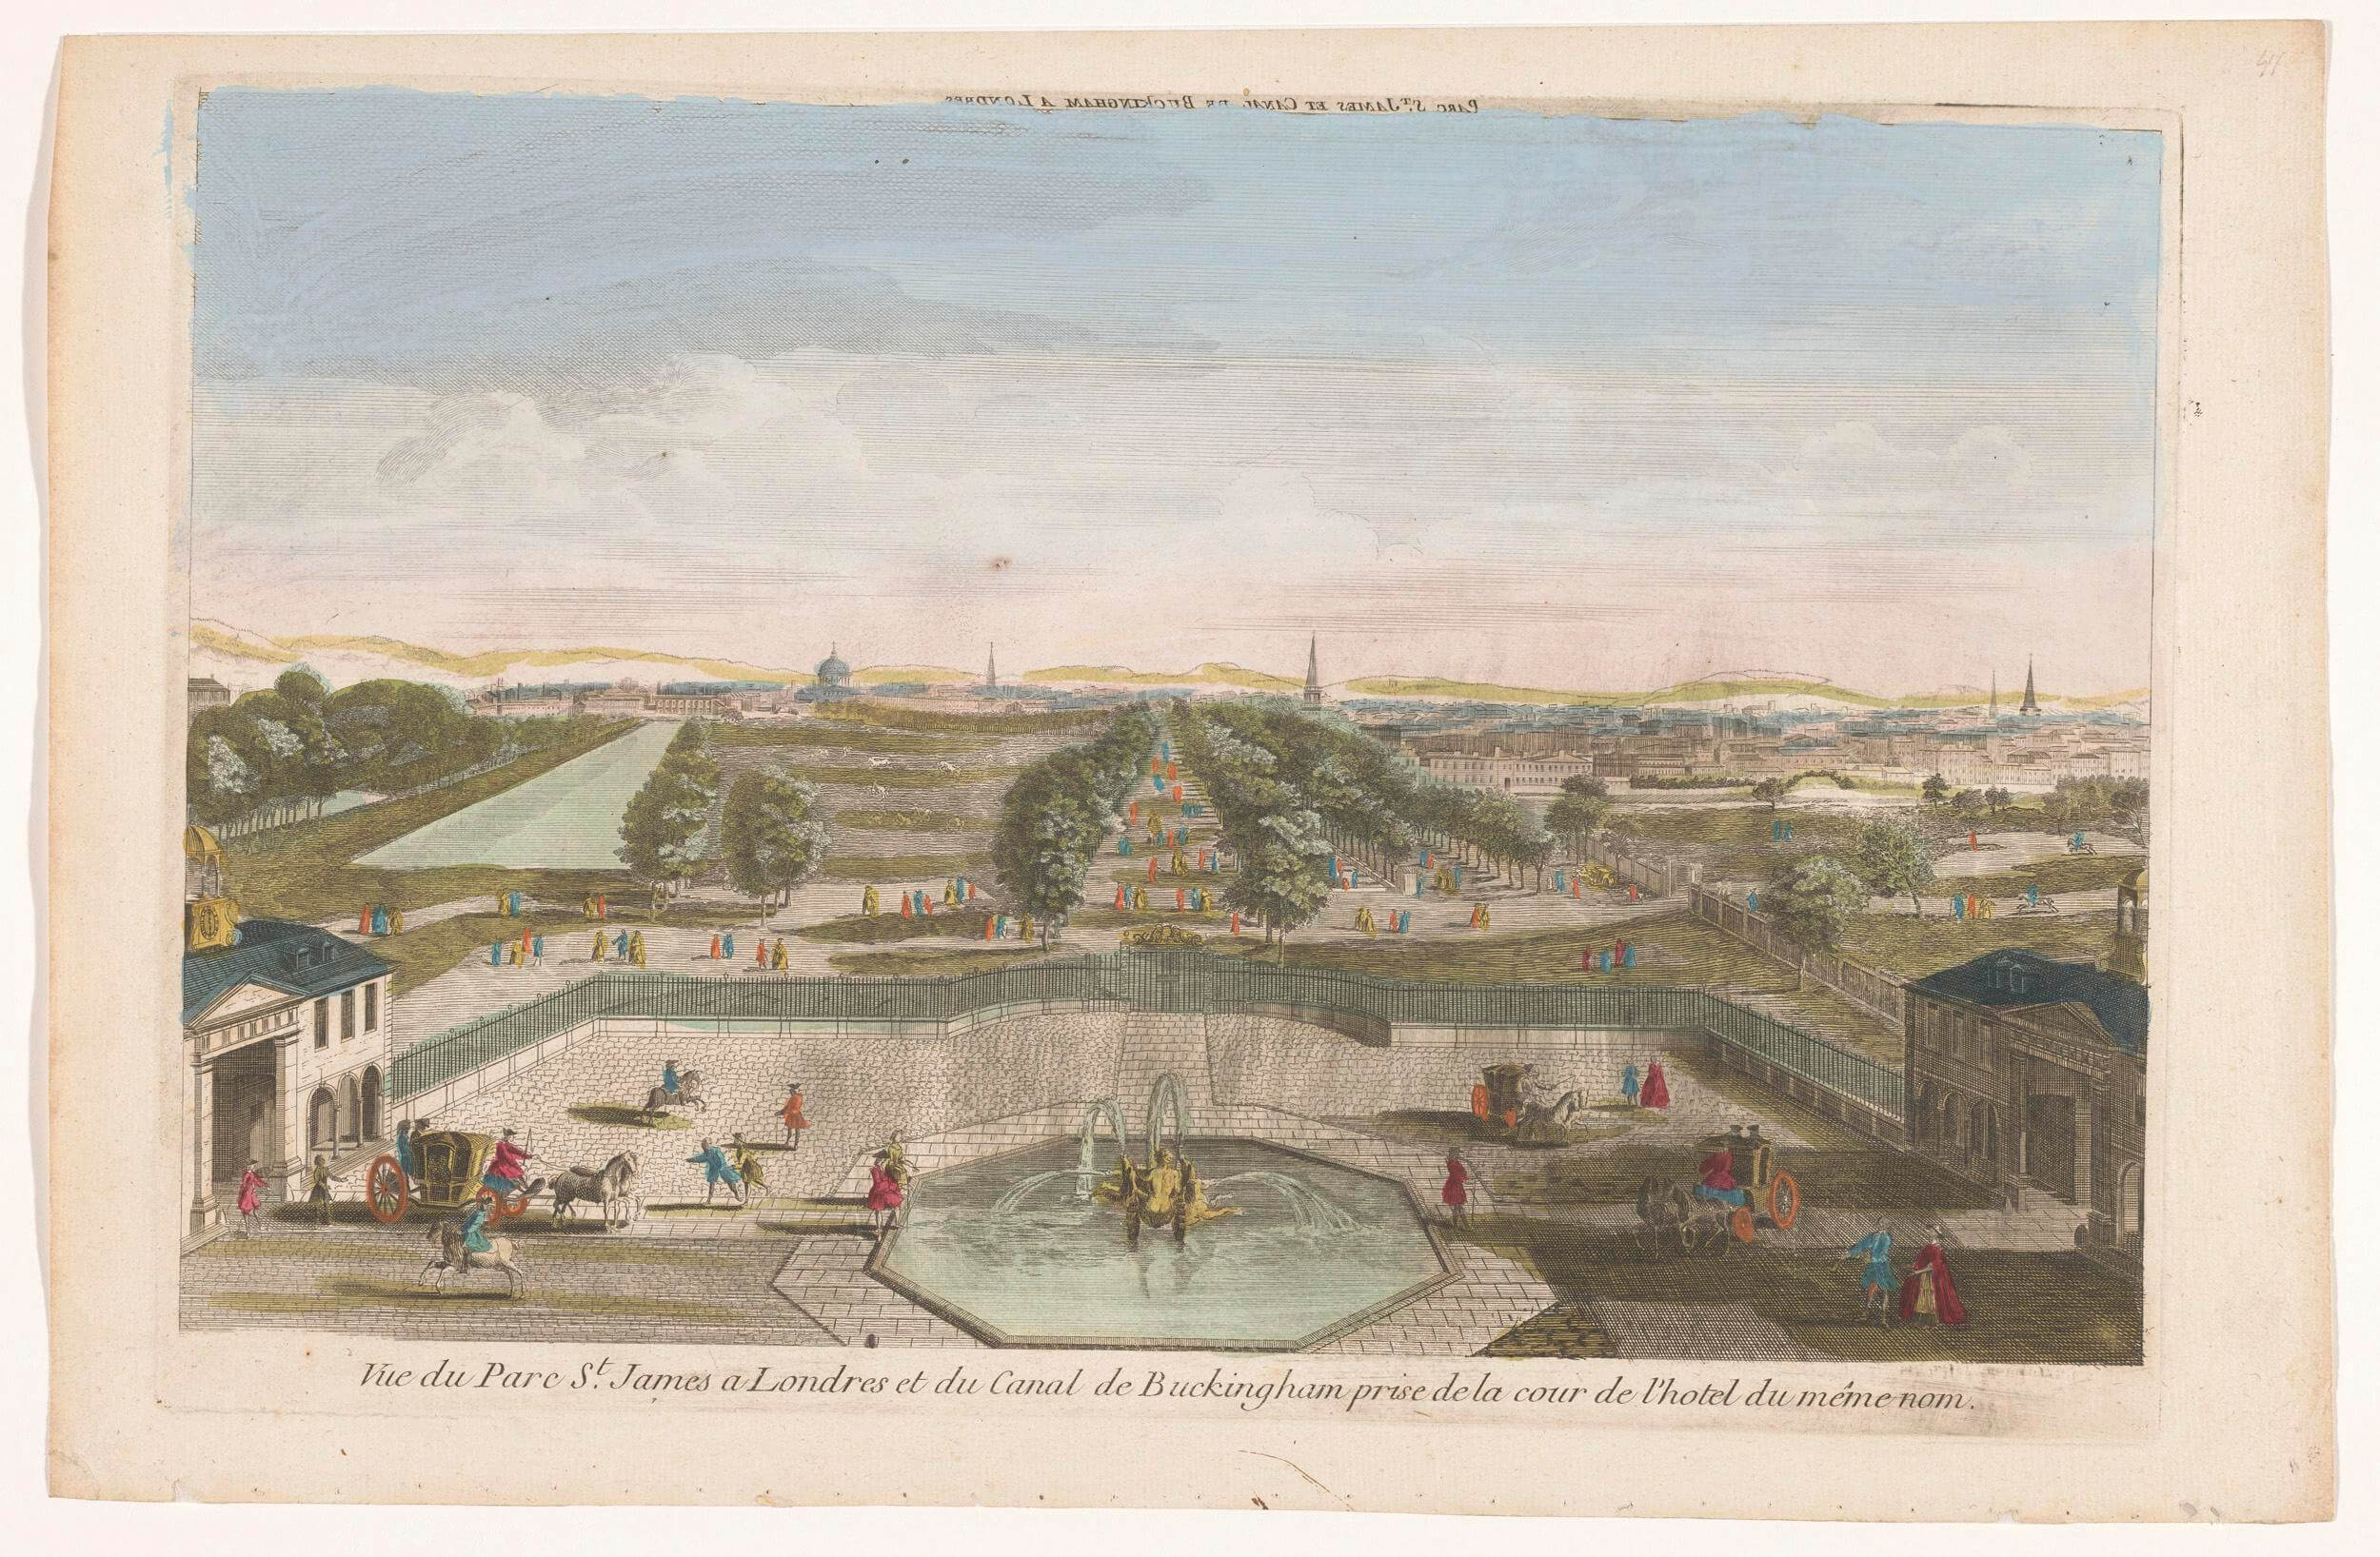 View of Saint James's Park in London seen from Buckingham House. Date: 1700 – 1799.